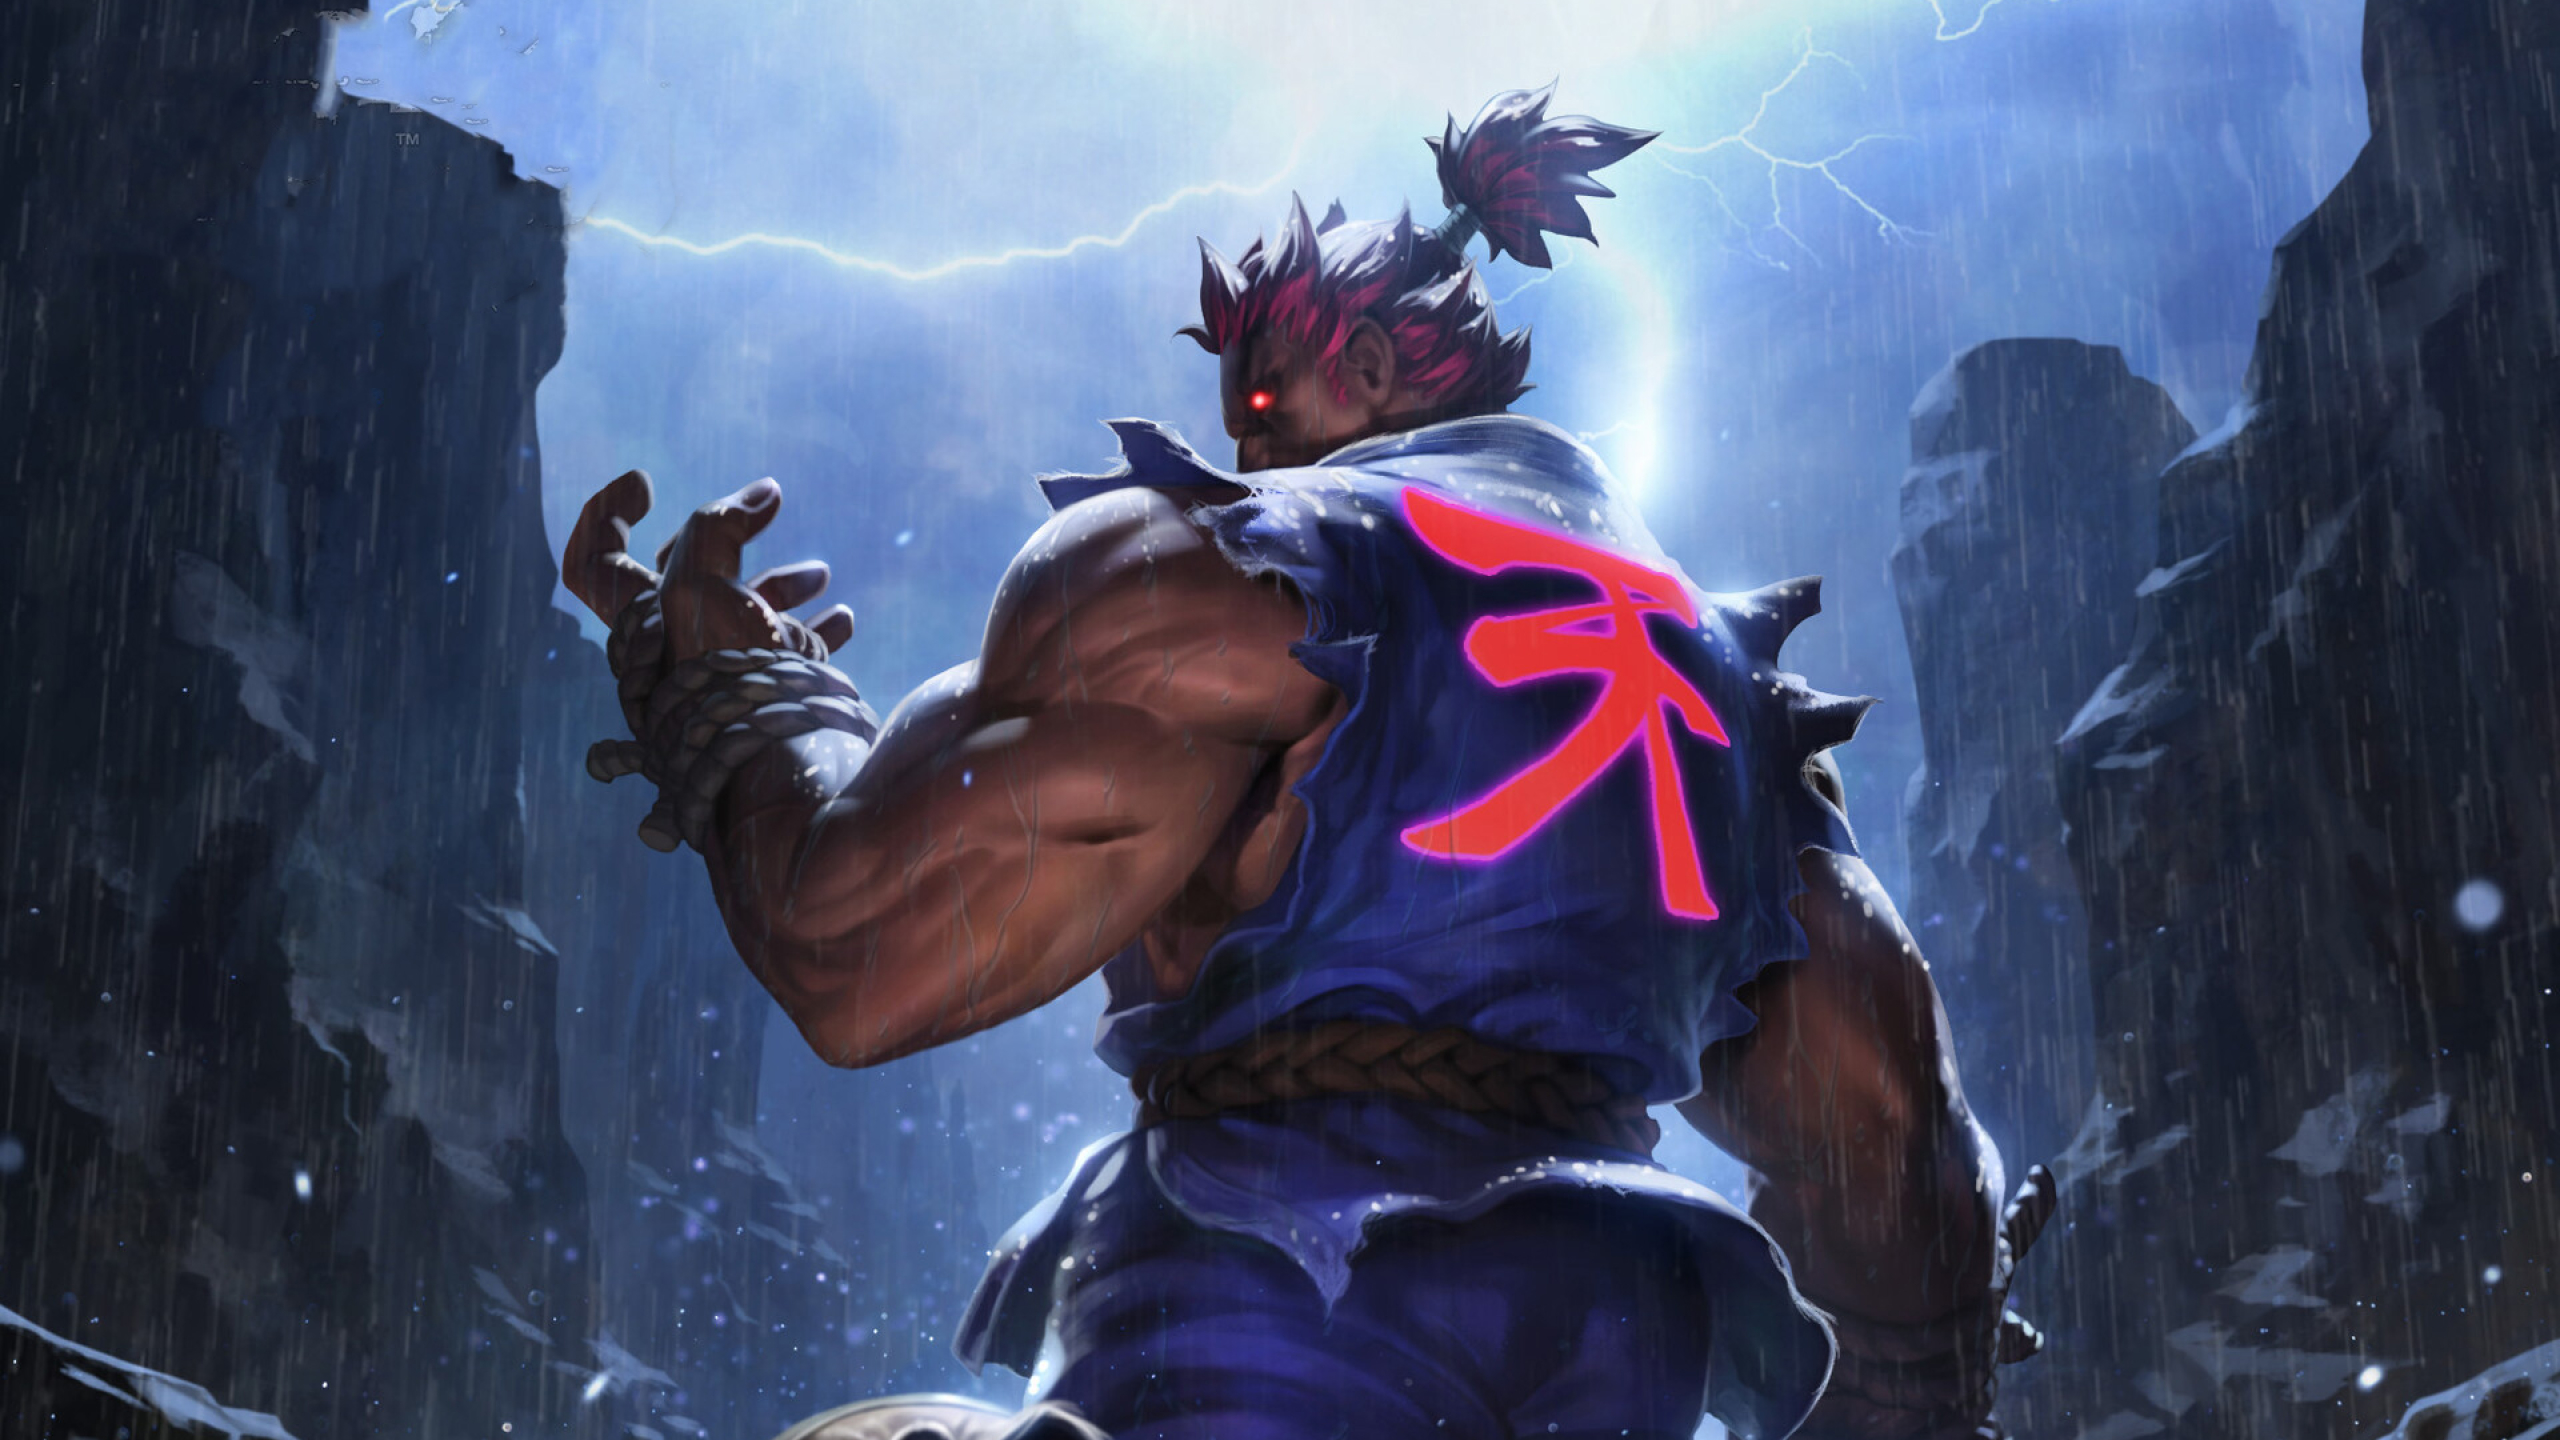 2560x1440 Akuma Street Fighter Game 1440p Resolution Wallpaper Hd